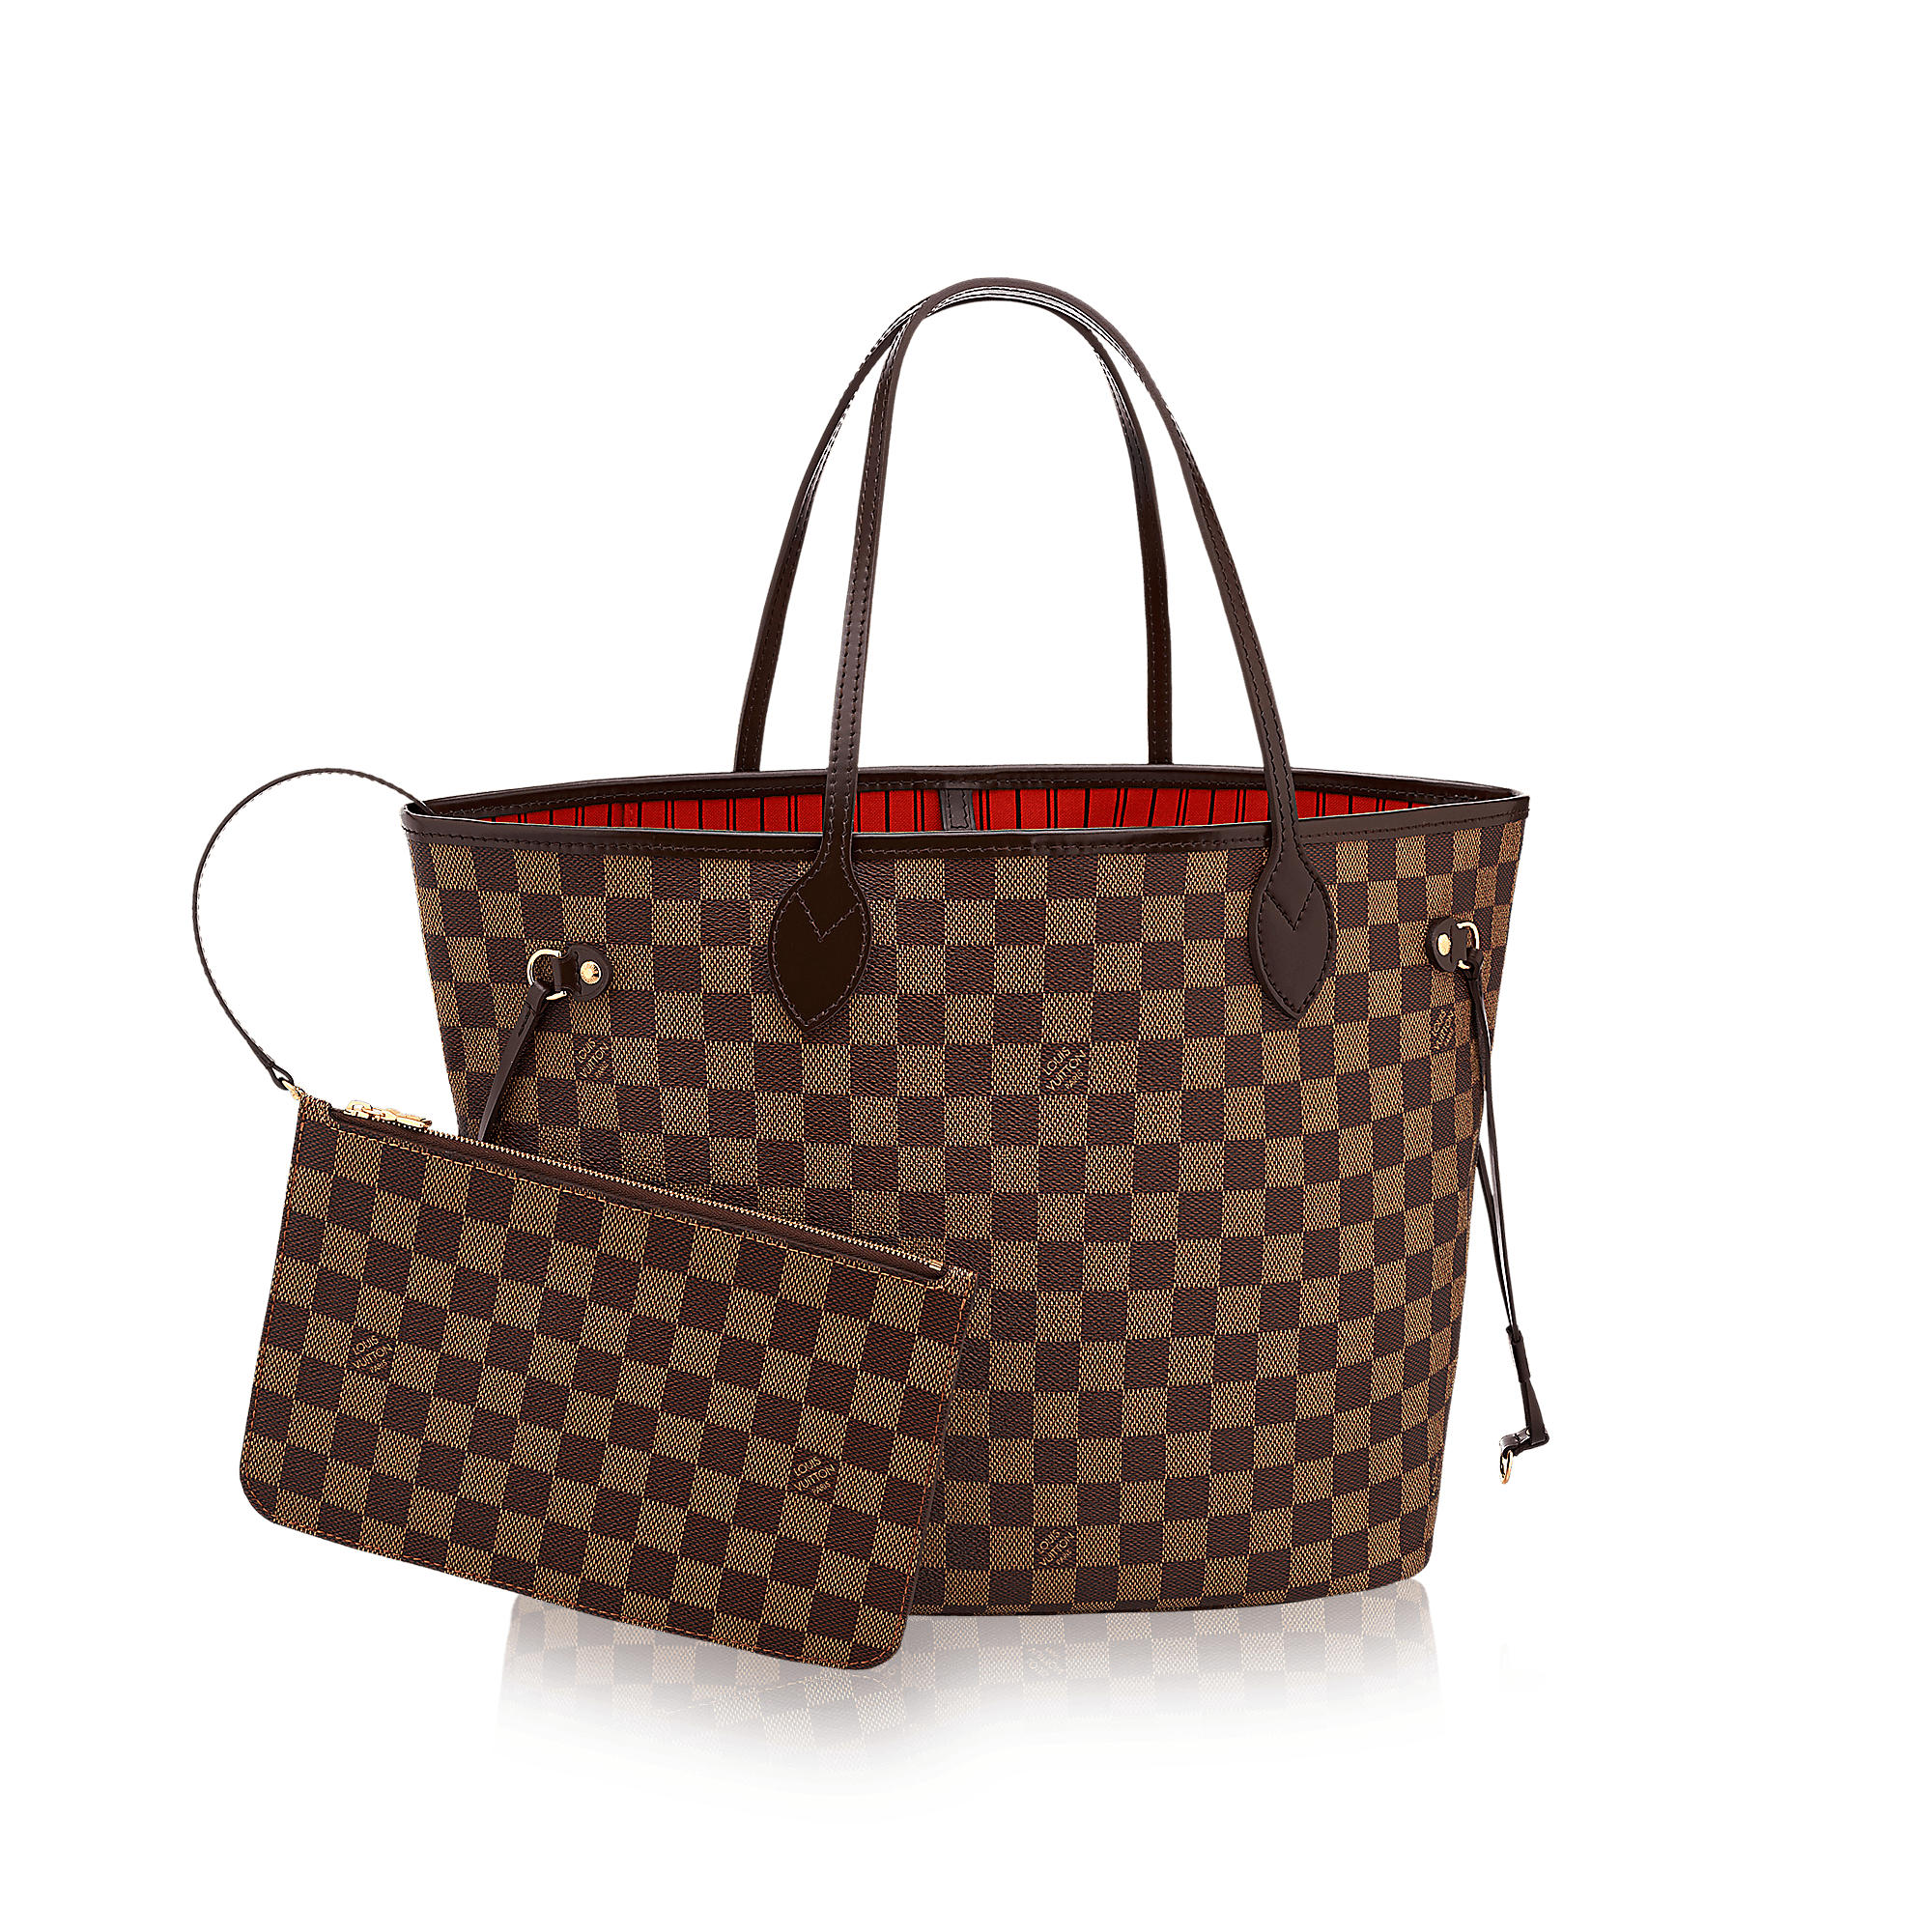 Top 10 most popular handbag designers for Amazon borse louis vuitton